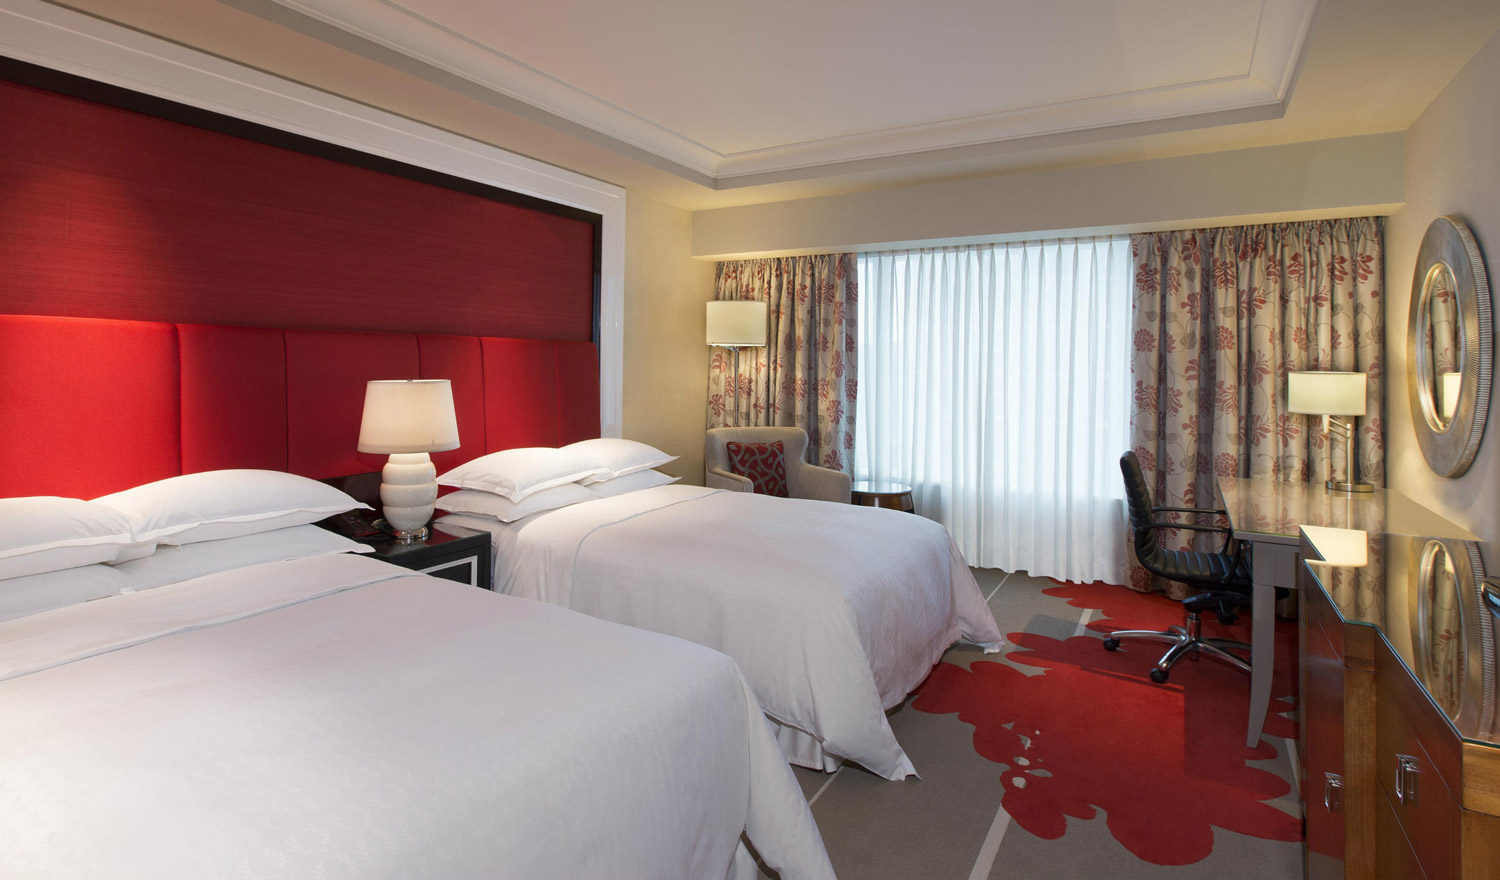 sheraton-macao_deluxe-room_photogallery-1_1500x880.jpg